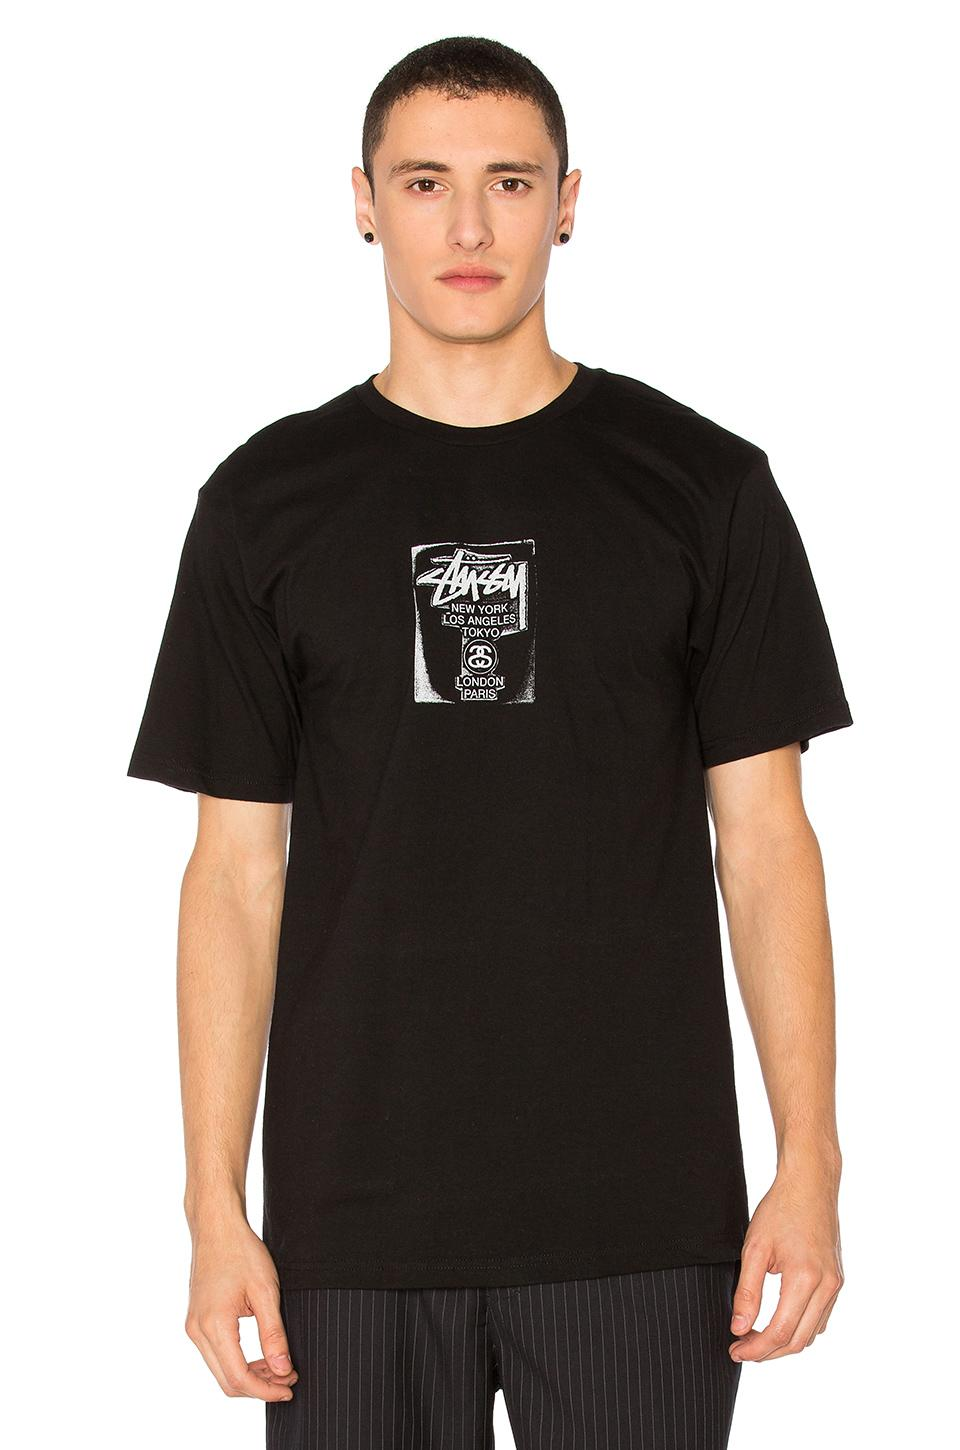 Stussy Wt Stamp Tee In Black & White.